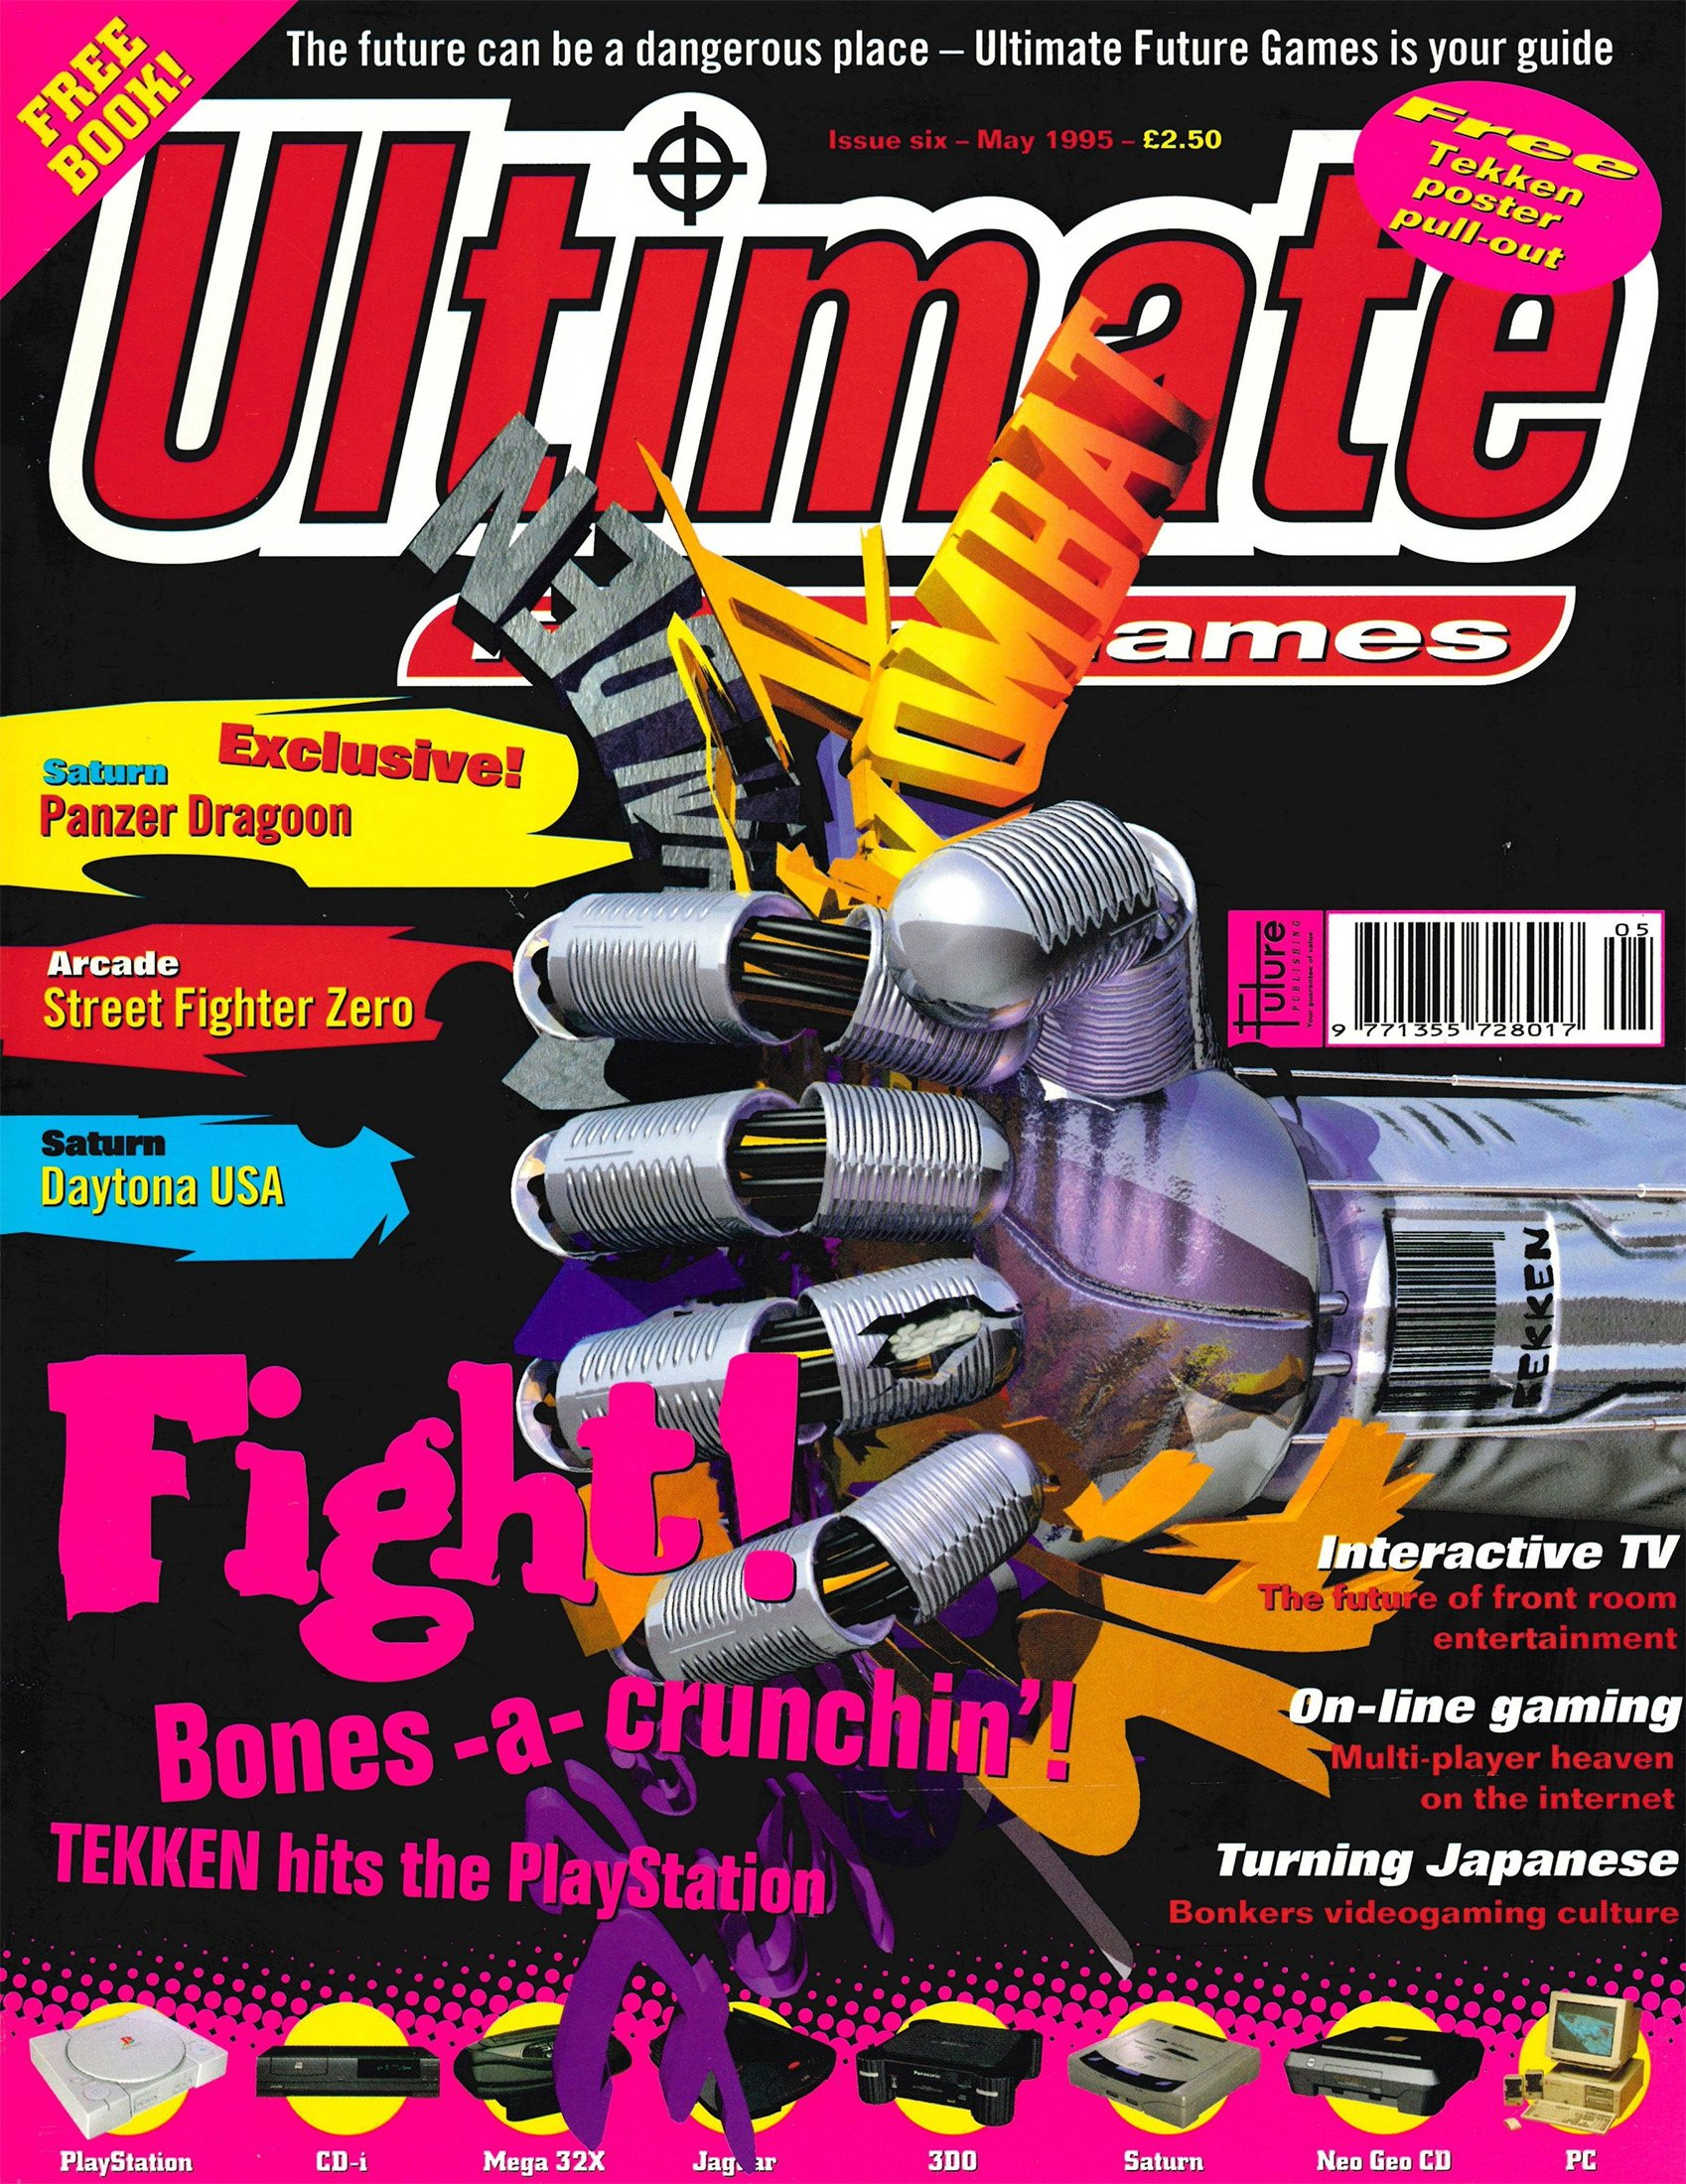 Ultimate Future Games 06 (May 1995)